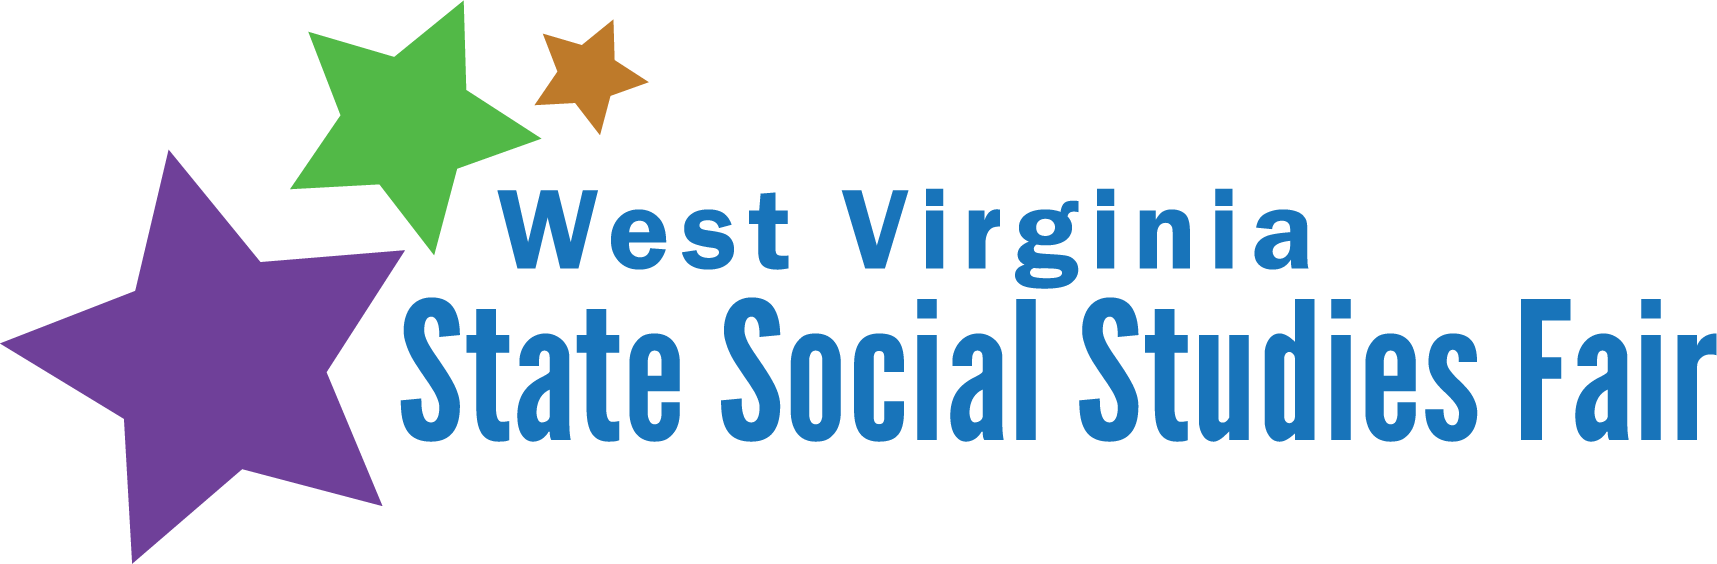 West Virginia State Social Studies Fair